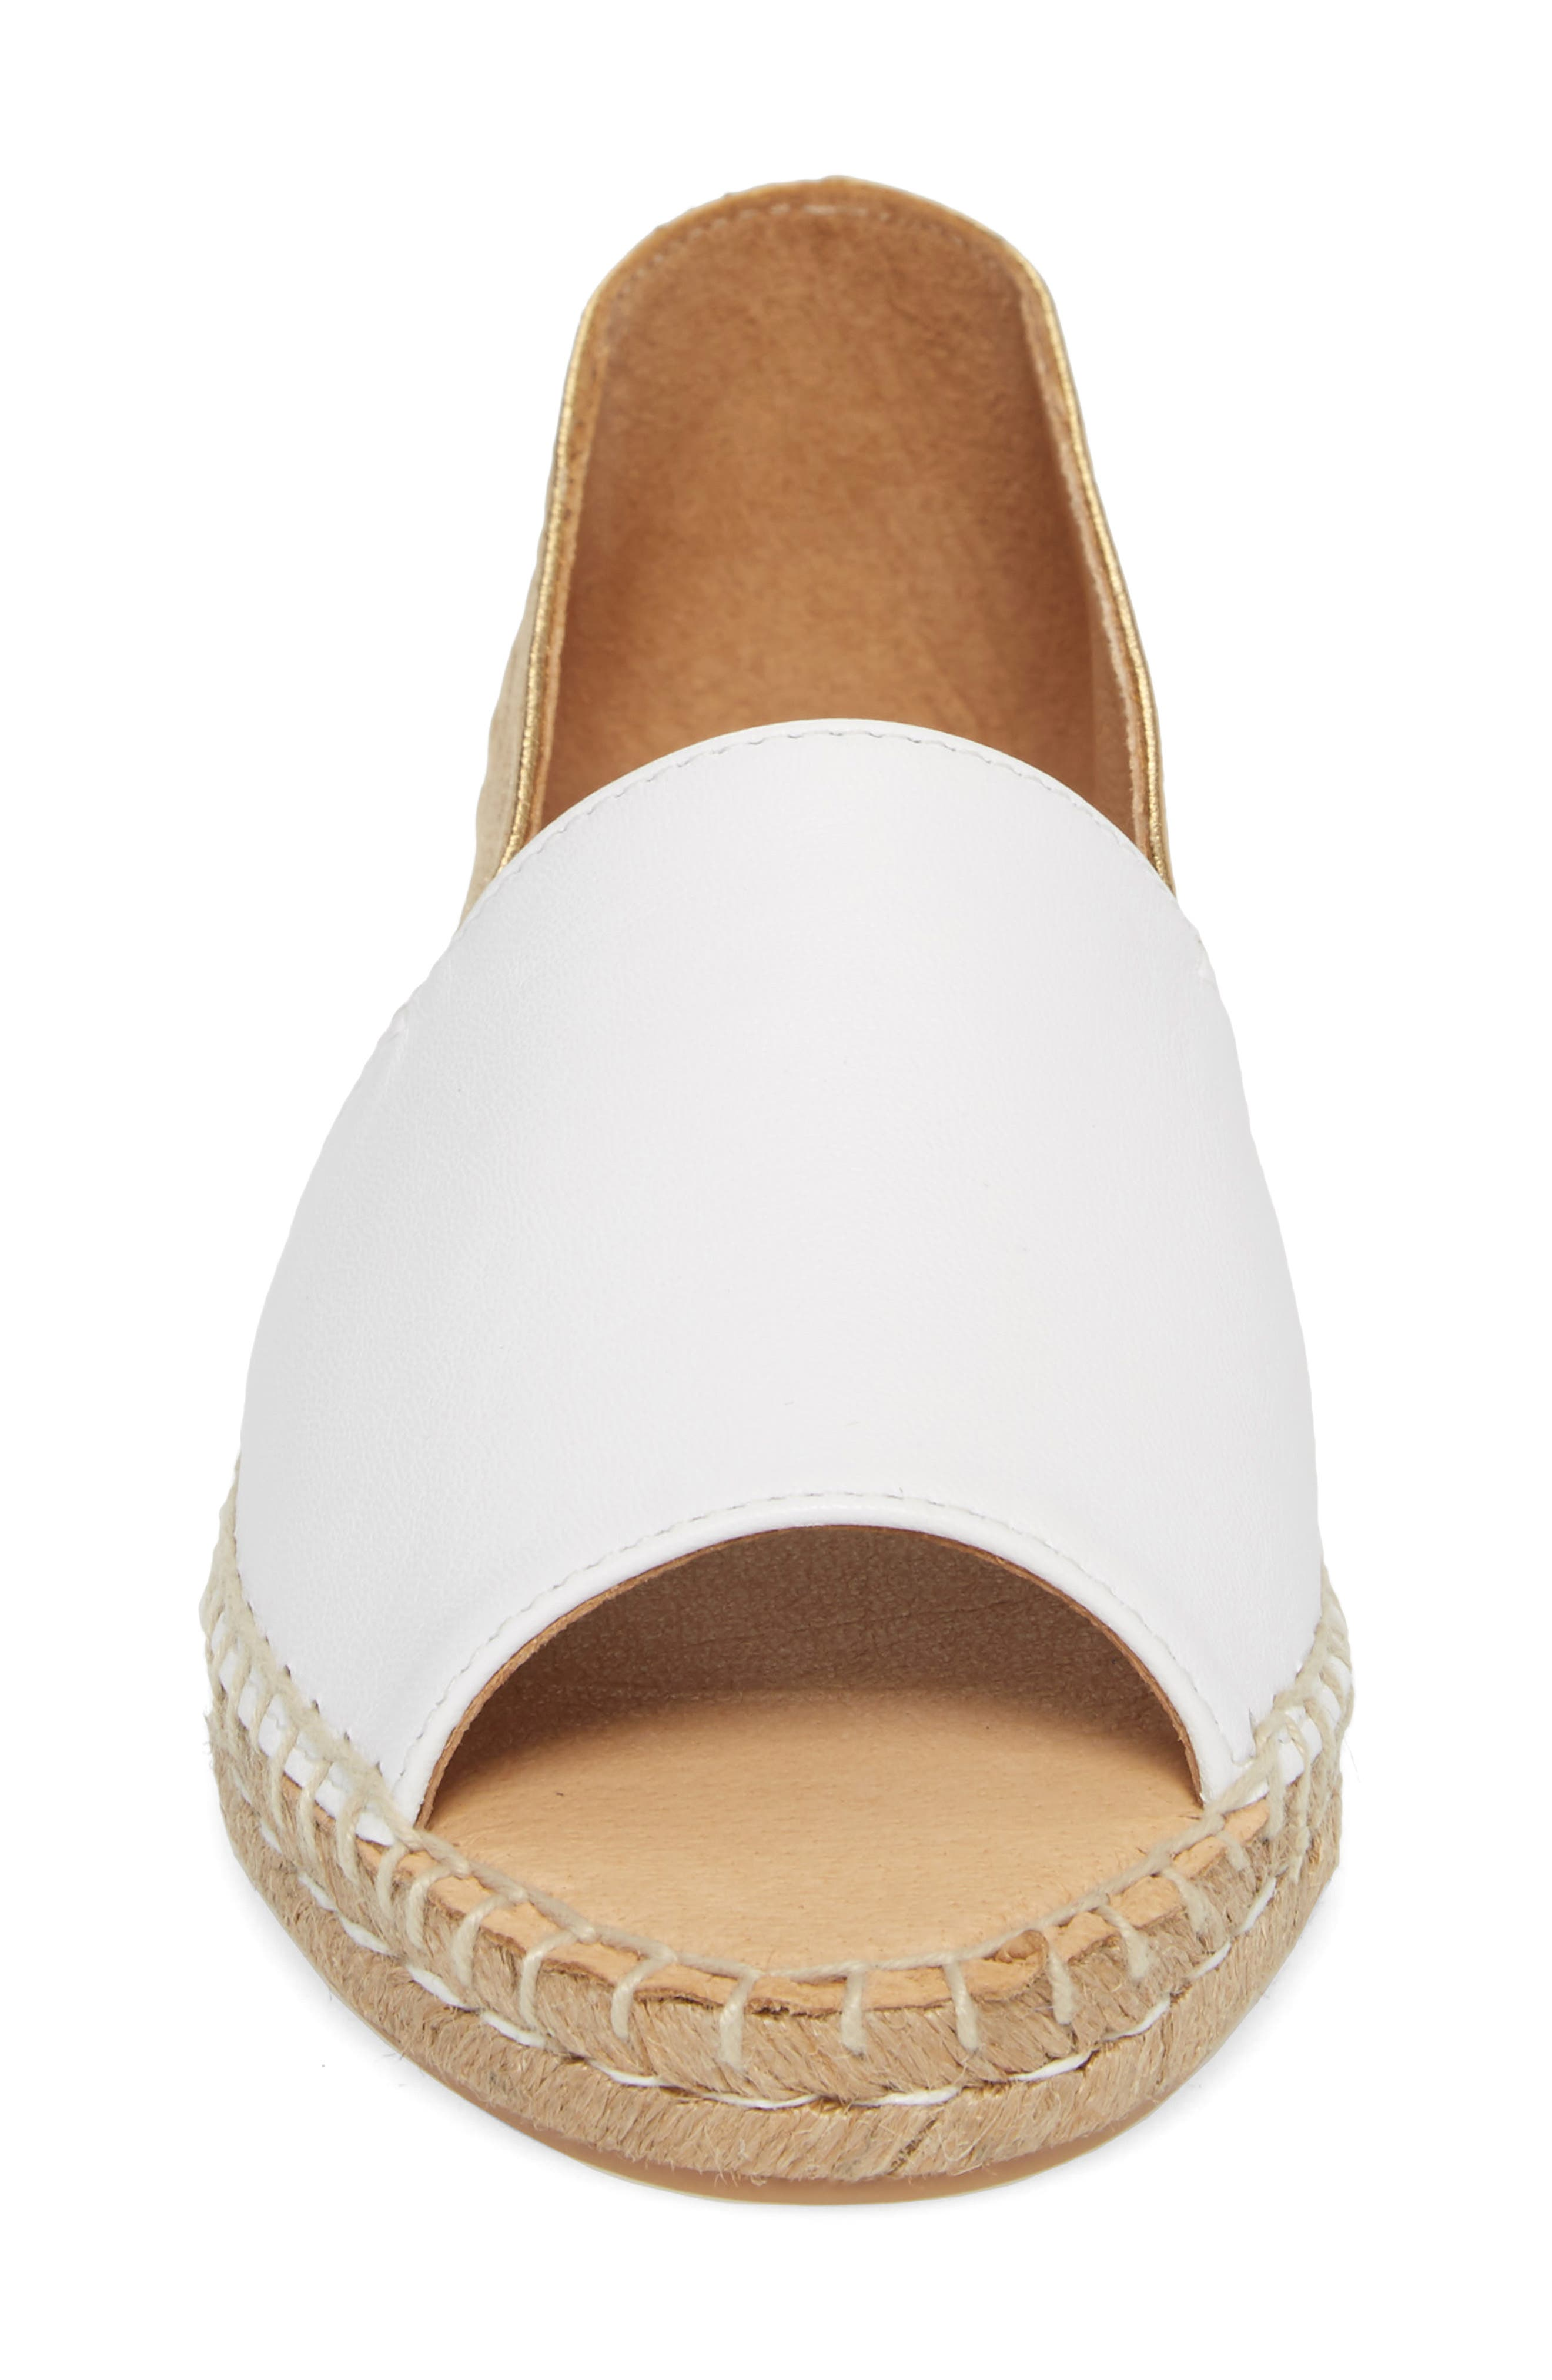 Milly Espadrille,                             Alternate thumbnail 4, color,                             Gold Leather